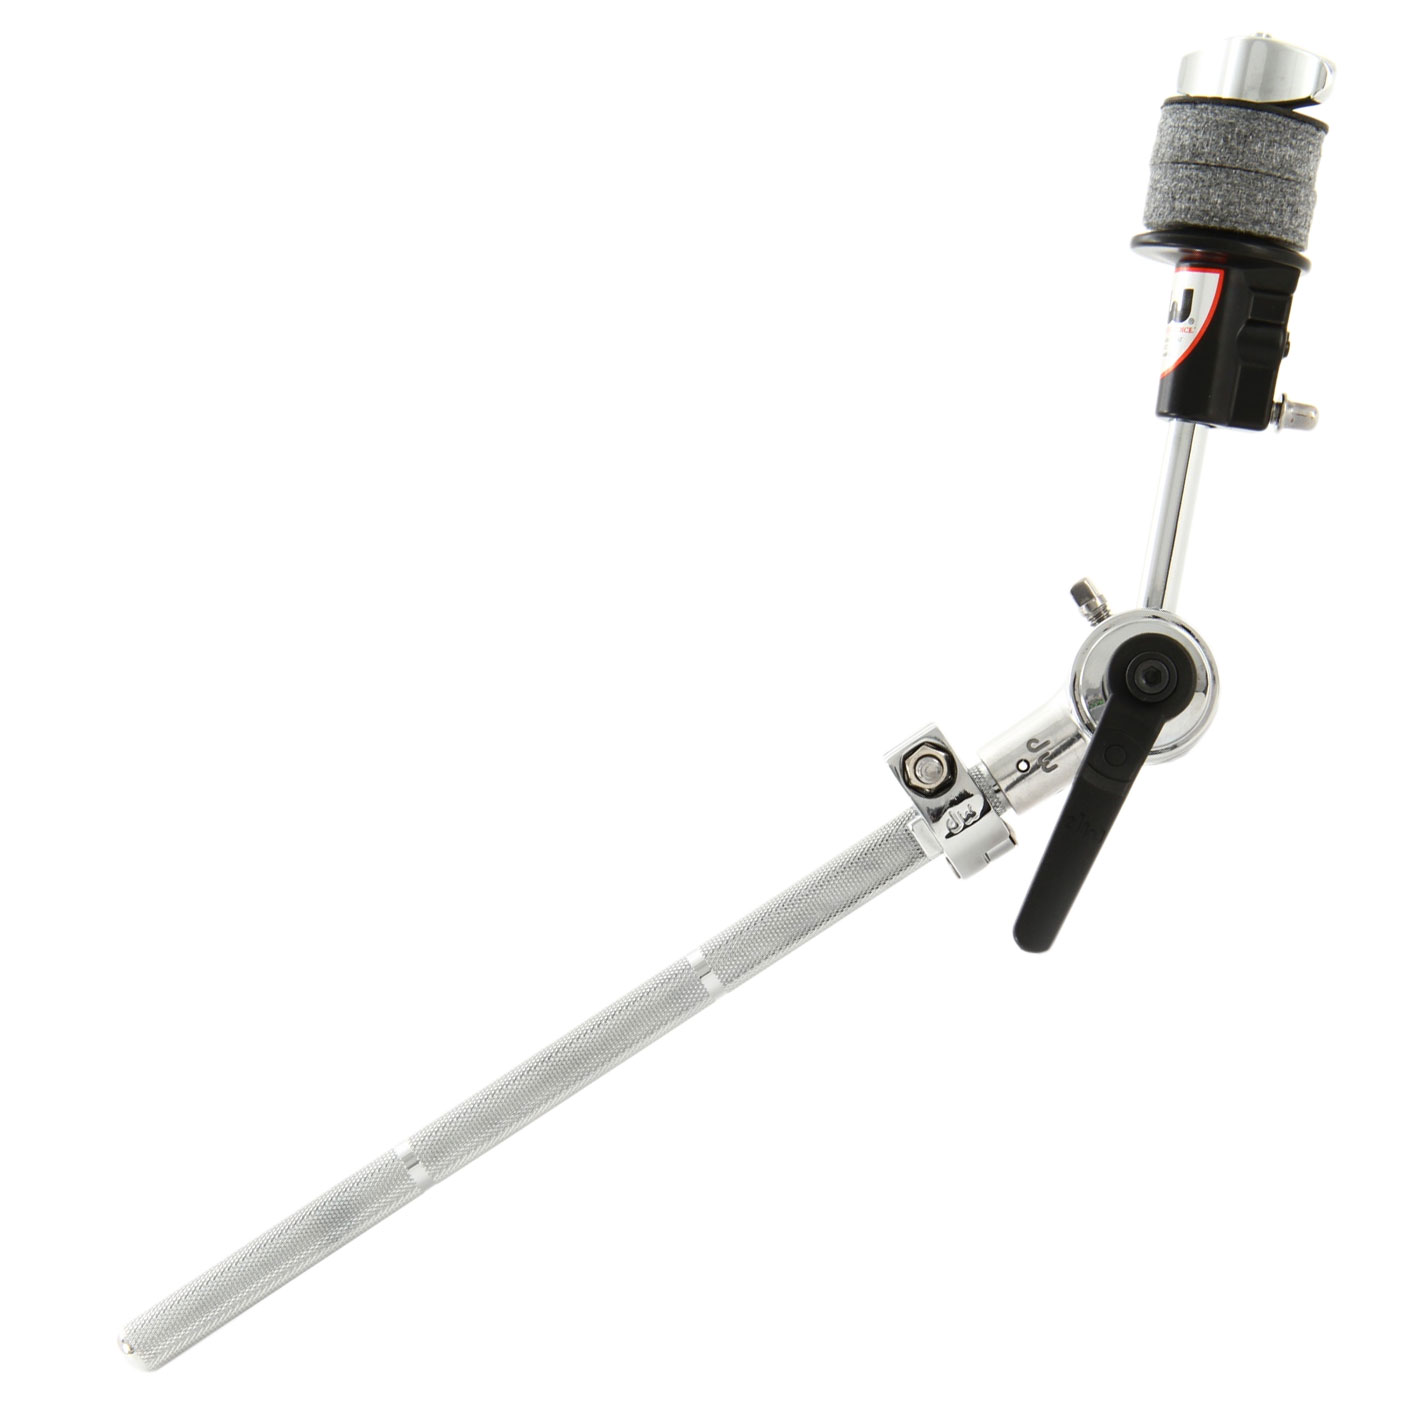 "DW 1/2 x 9"" Short Boom Arm"